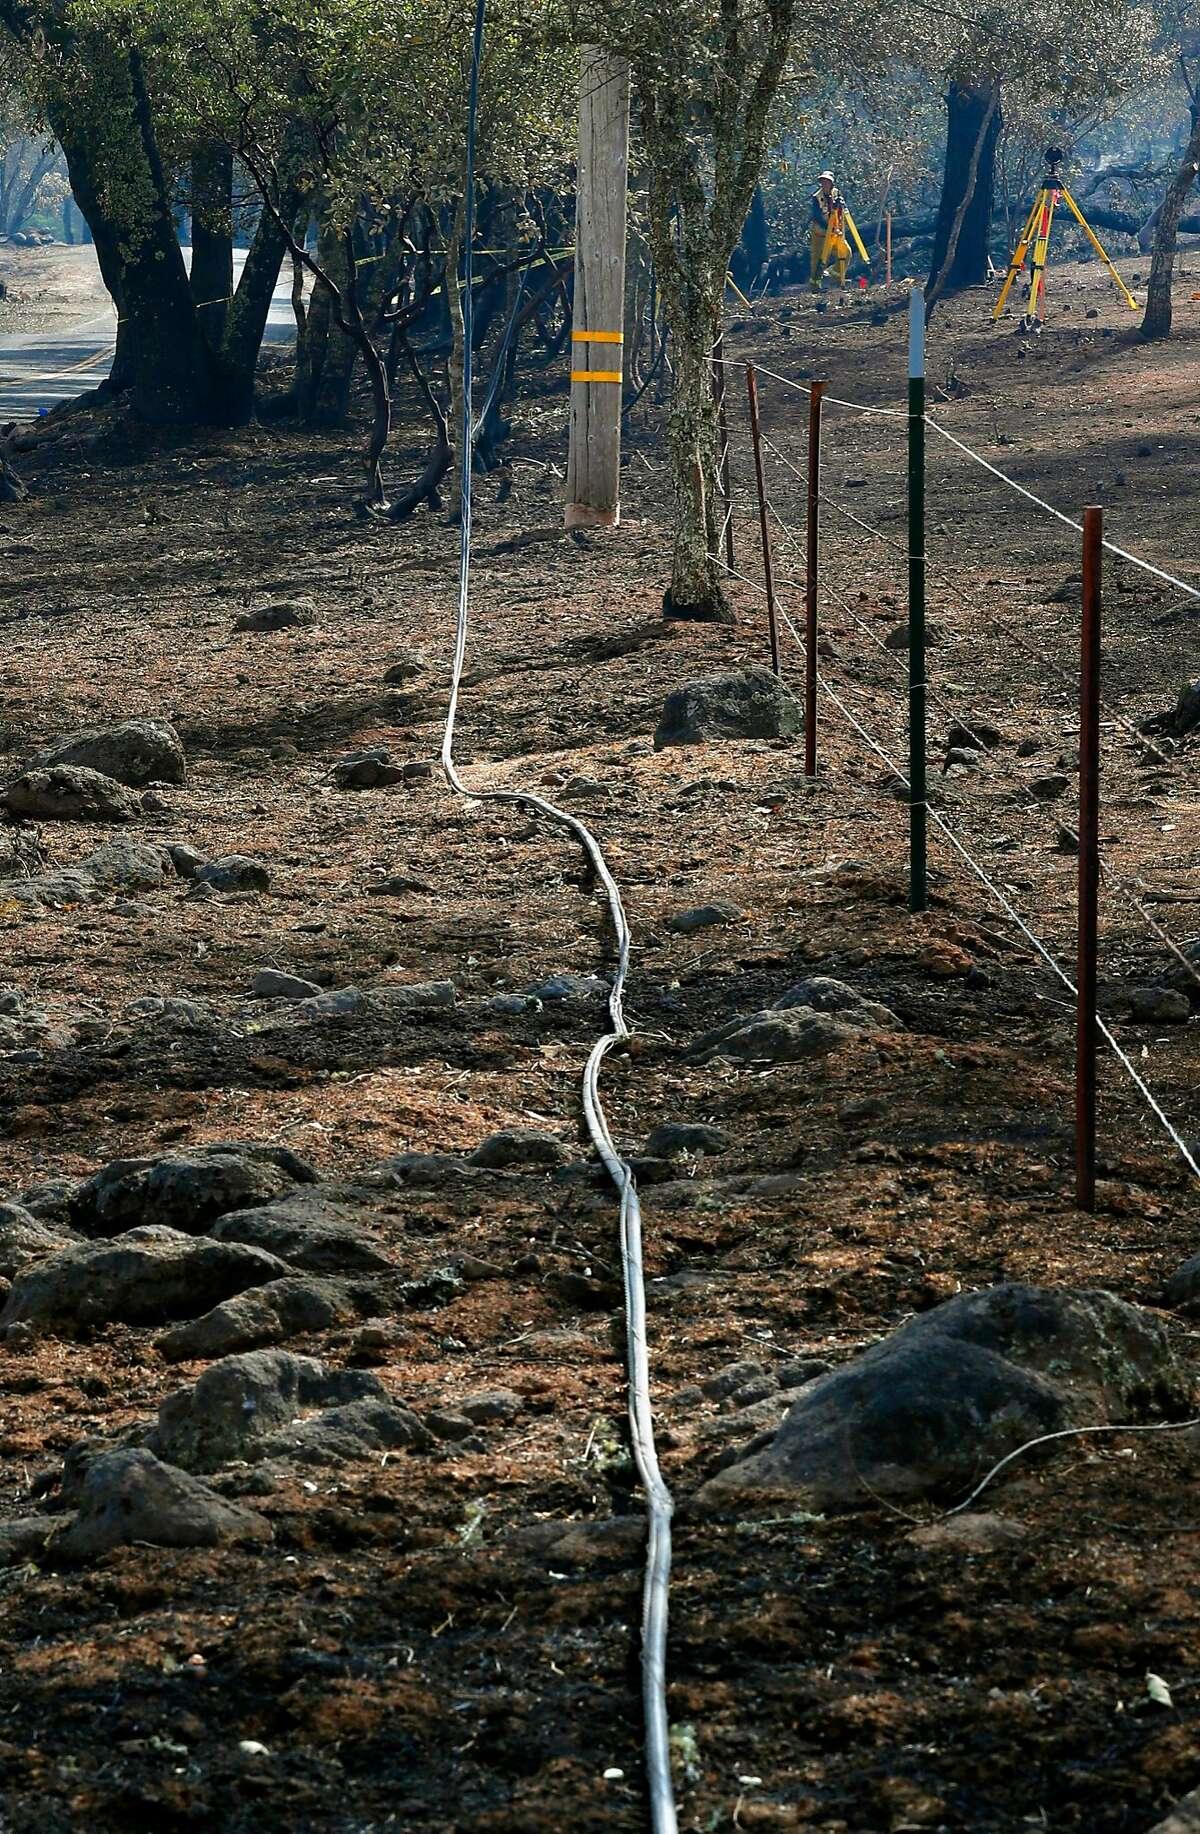 Burned power lines on the ground as investigators (background) searched for the cause of the Atlas fire east of Santa Rosa, Ca. as seen on Tuesday October 17, 2017.